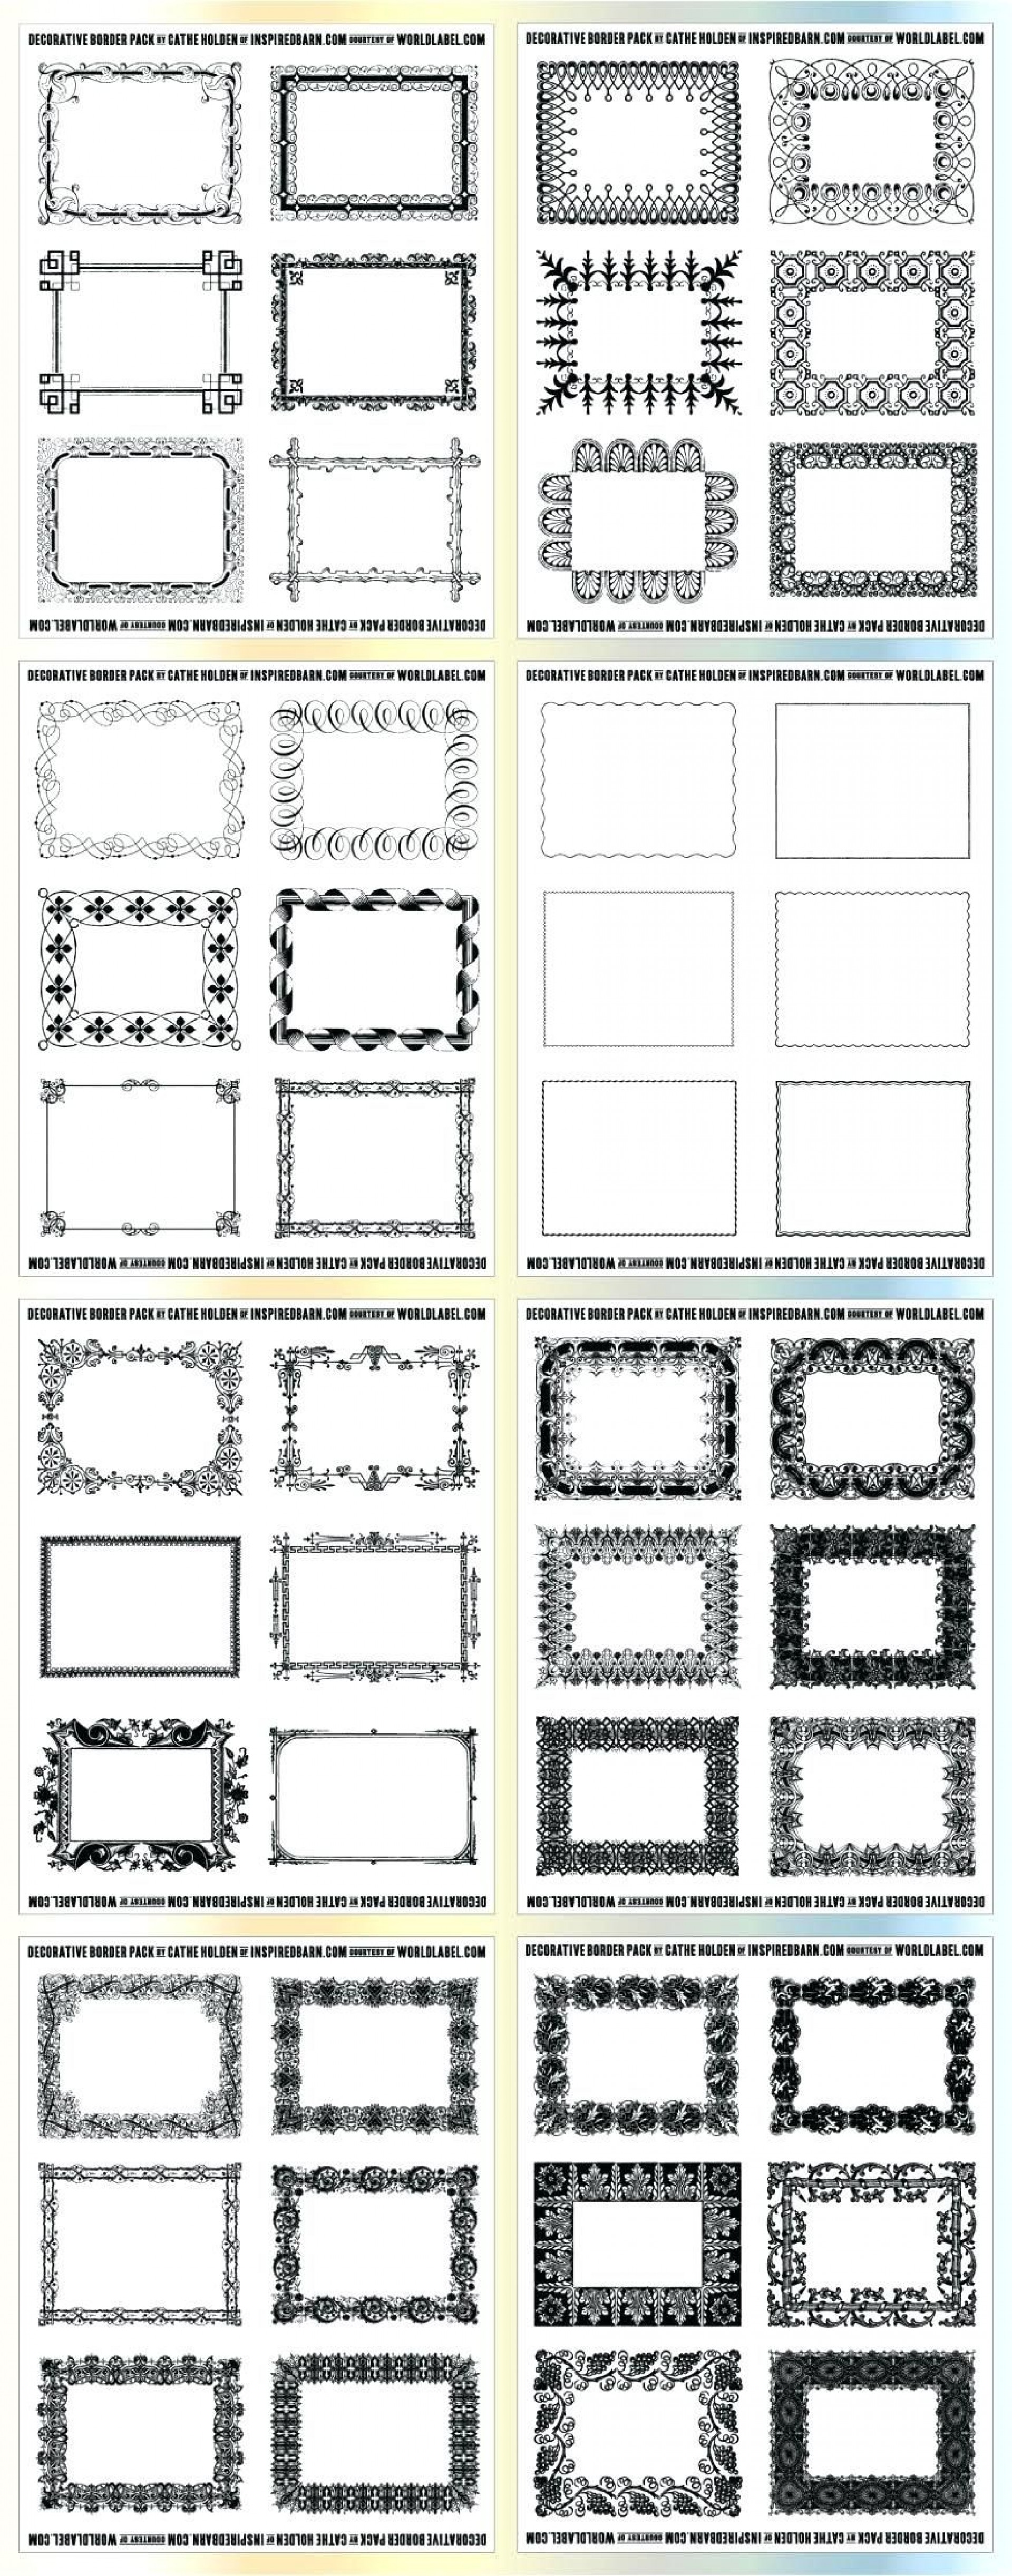 008 Wondrou Free Mail Label Template Example  Printable Addres 1 X 2 5 8 For Word Download1920